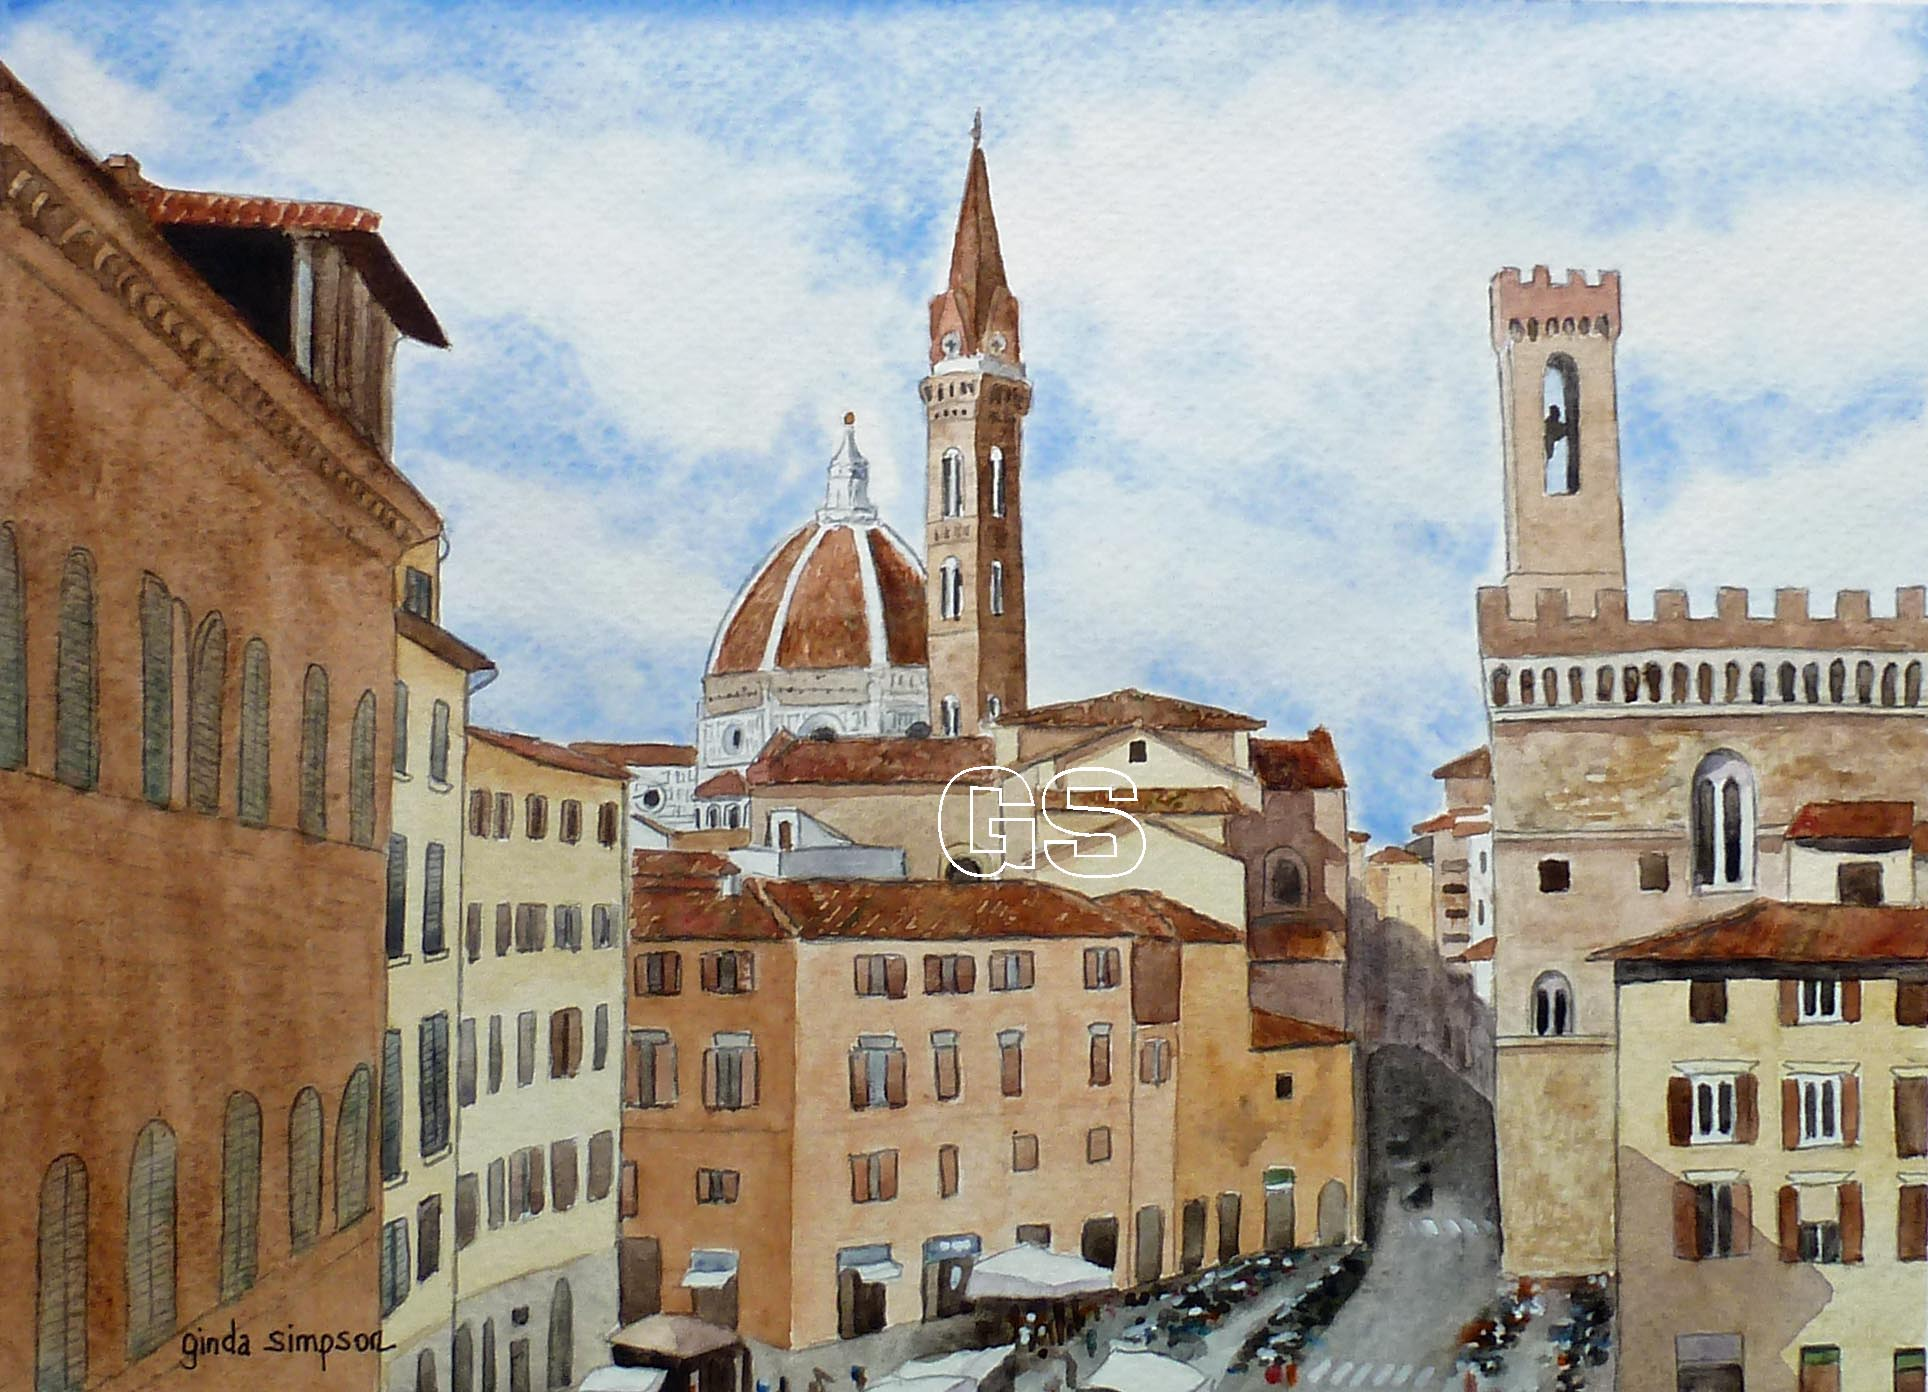 Albergo Bernini The View From Hotel Bernini Palace Florence Artful Rooms With